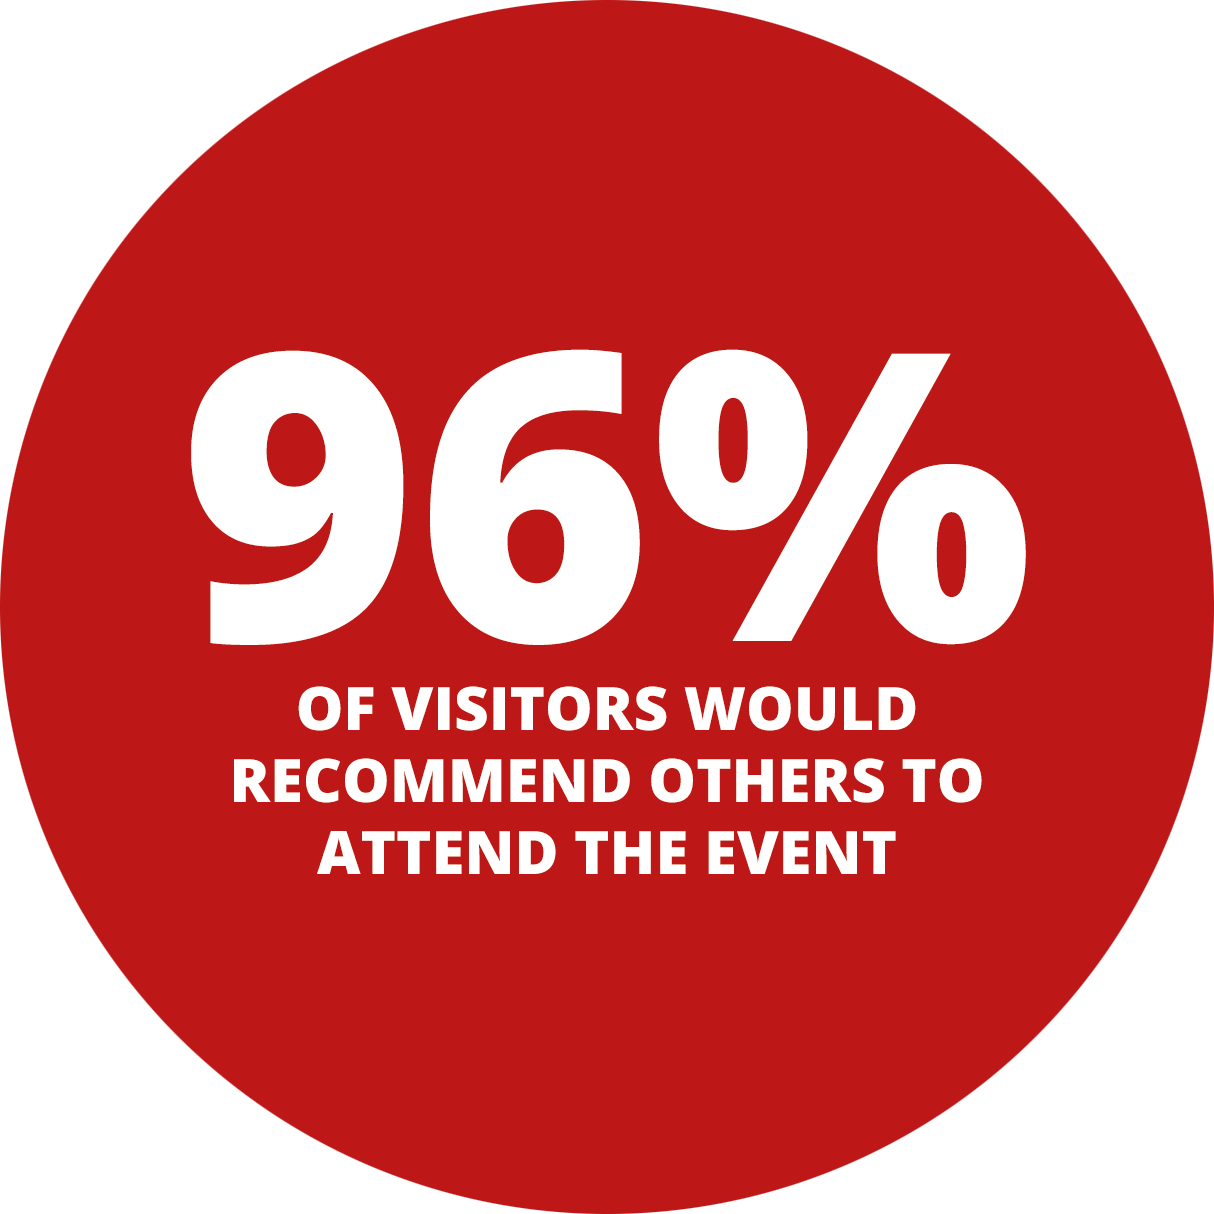 96% of visitors would recommend others to attend the event.